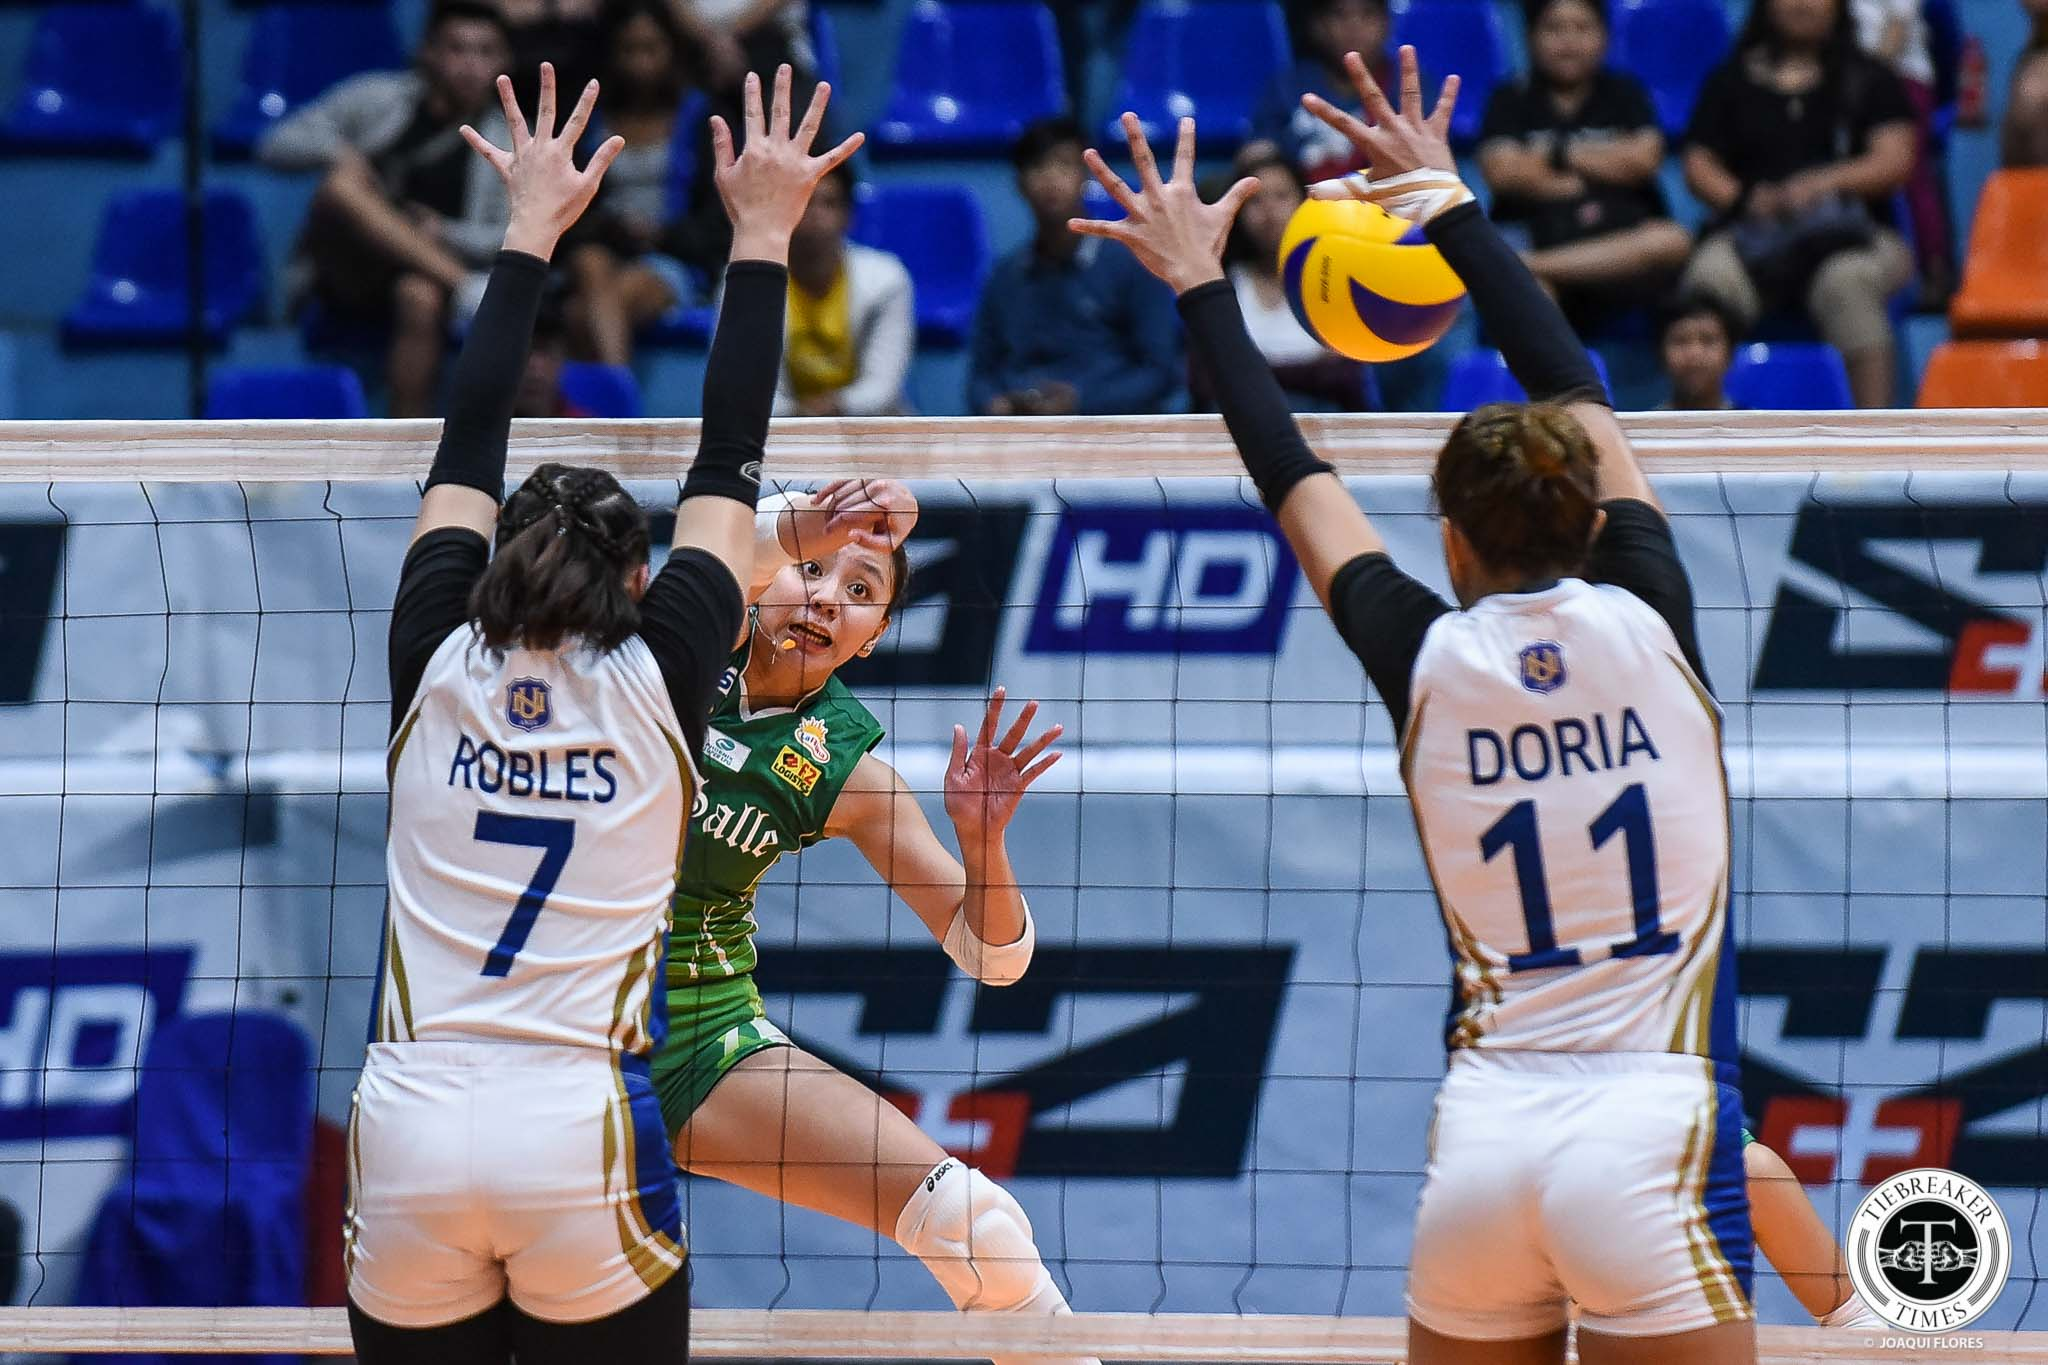 Tiebreaker Times Des Cheng snaps out of funk, looks to be La Salle's leader moving forward DLSU News UAAP Volleyball  UAAP Season 81 Women's Volleyball UAAP Season 81 DLSU Women's Volleyball Des Cheng